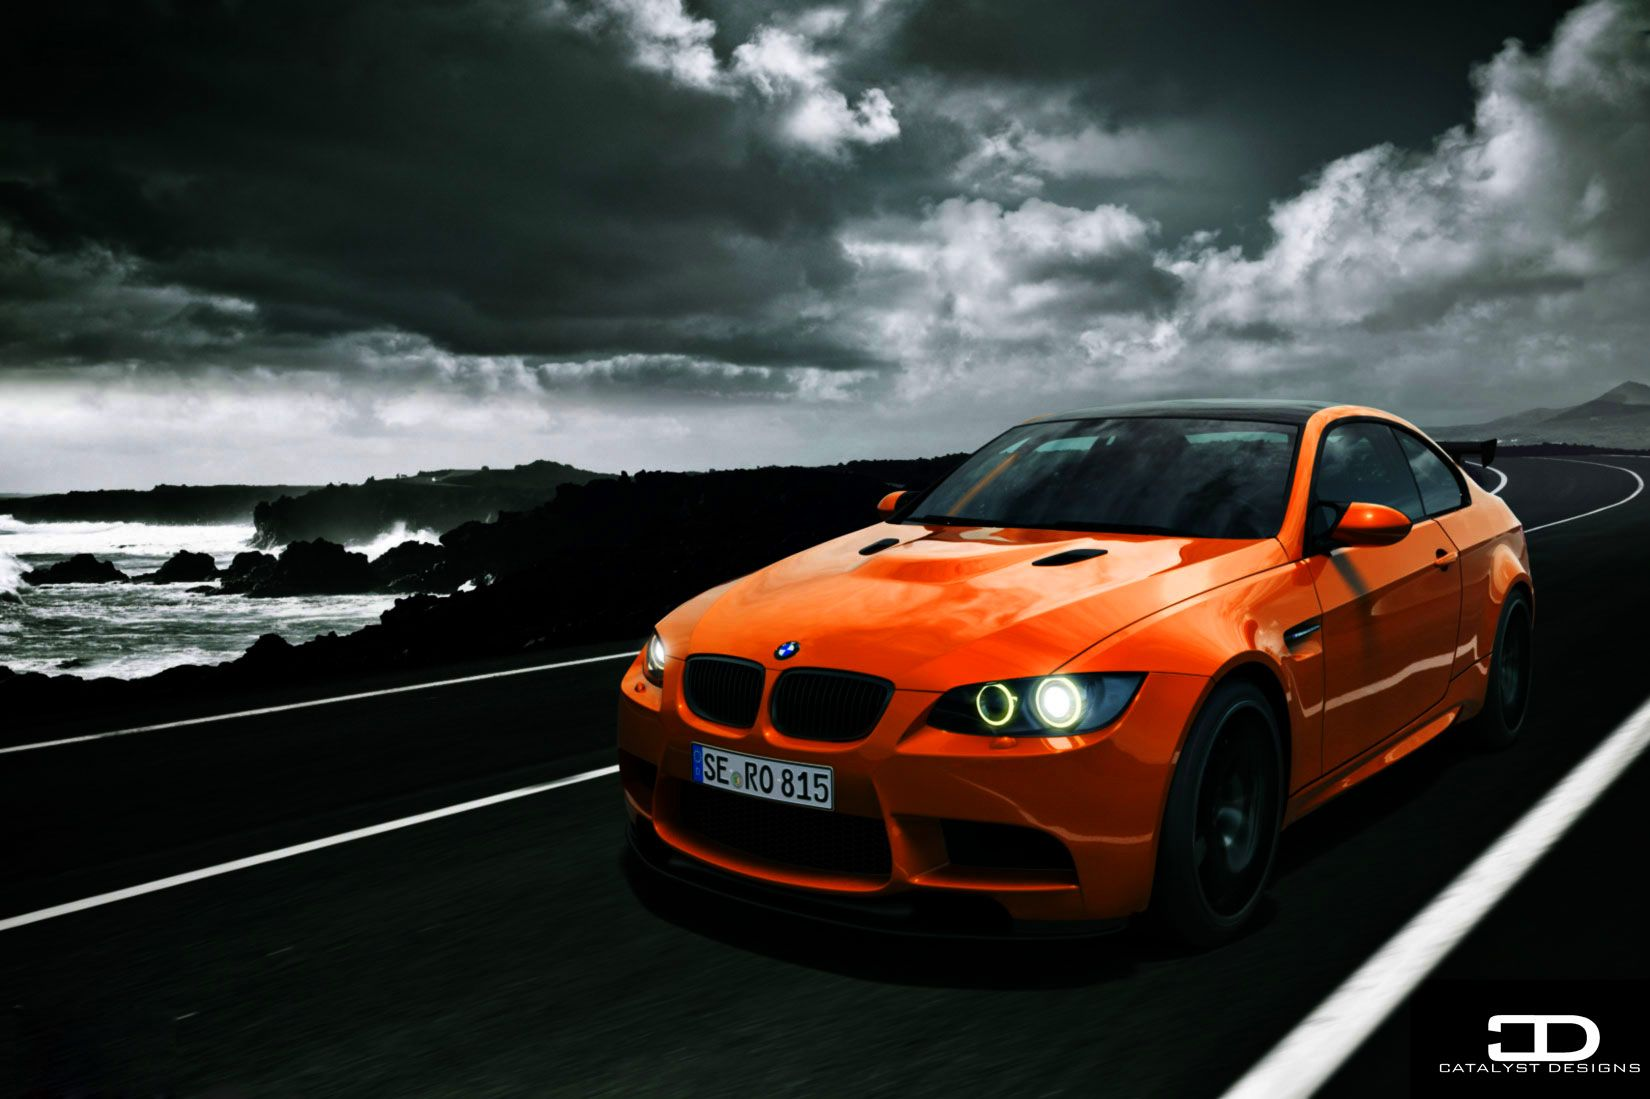 BMW M3 GTS Wallpaper HD Beautiful Landscapes BMW BMW M3 Bmw M3